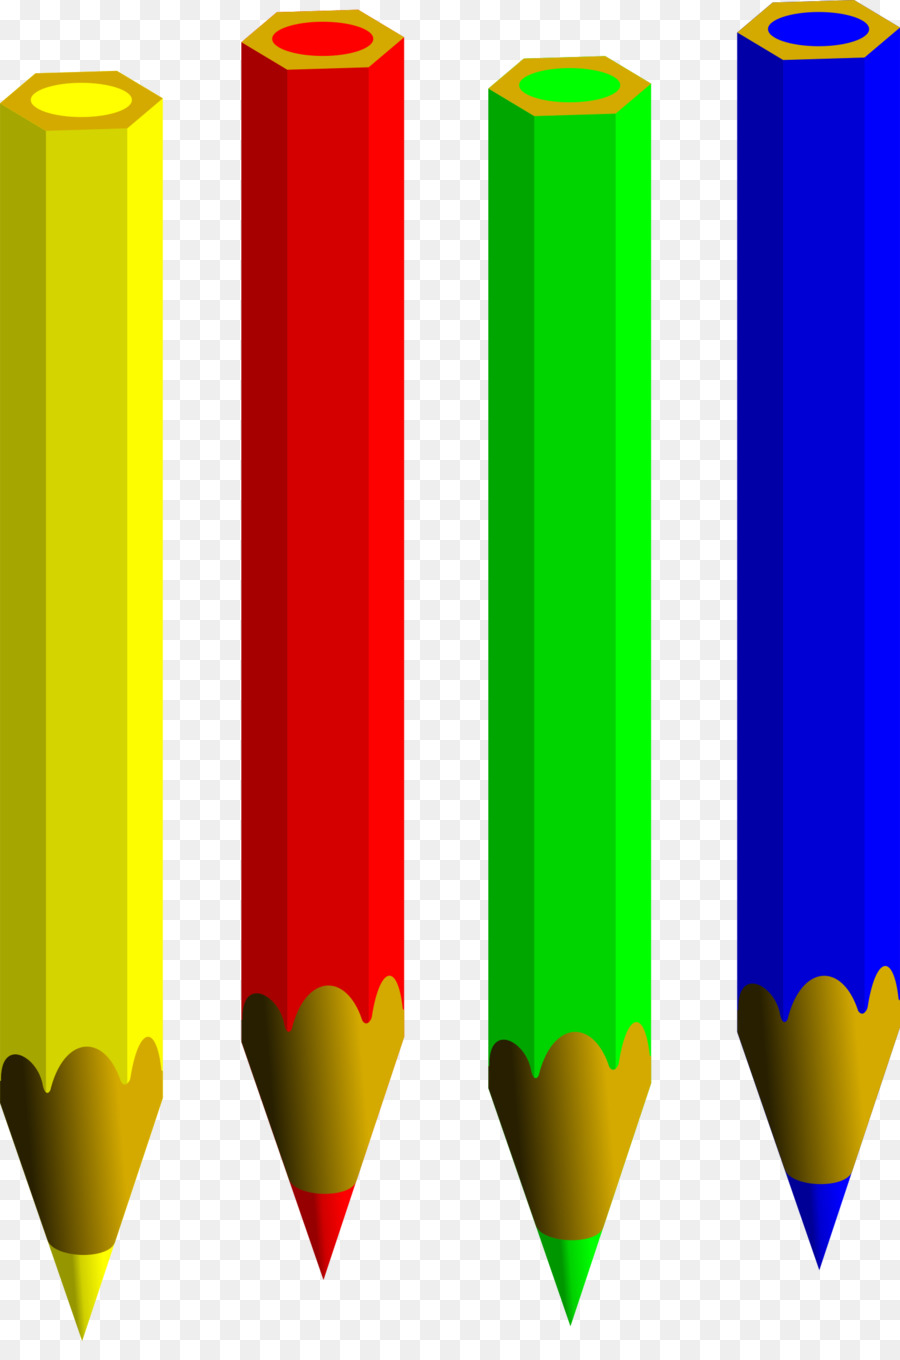 Crayon clipart four. Pencil cartoon transparent clip